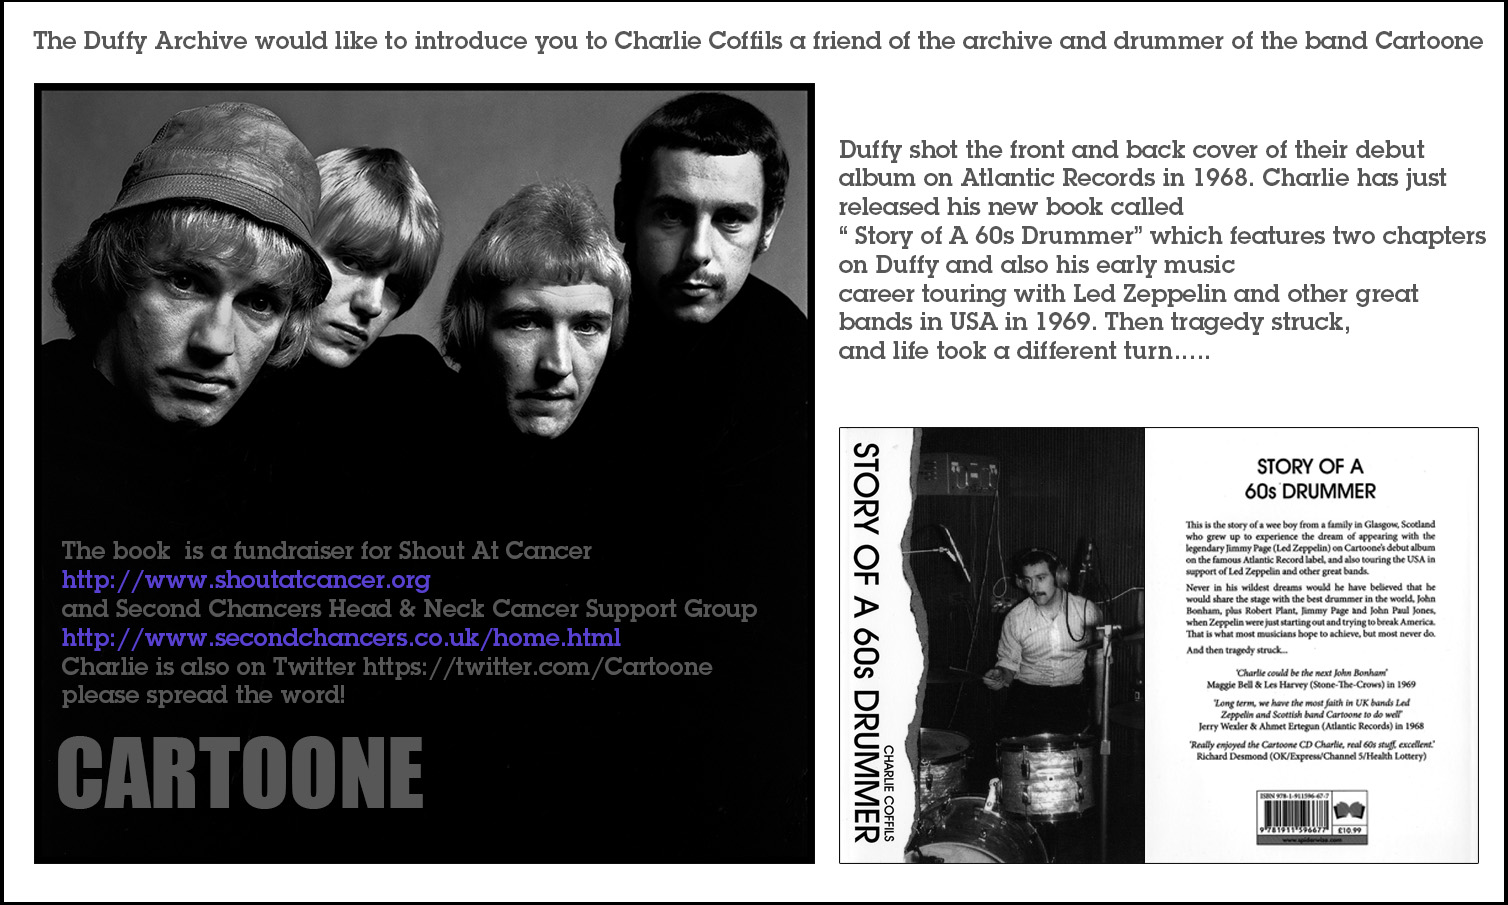 The Duffy Archive - Story of a 60's Drummer